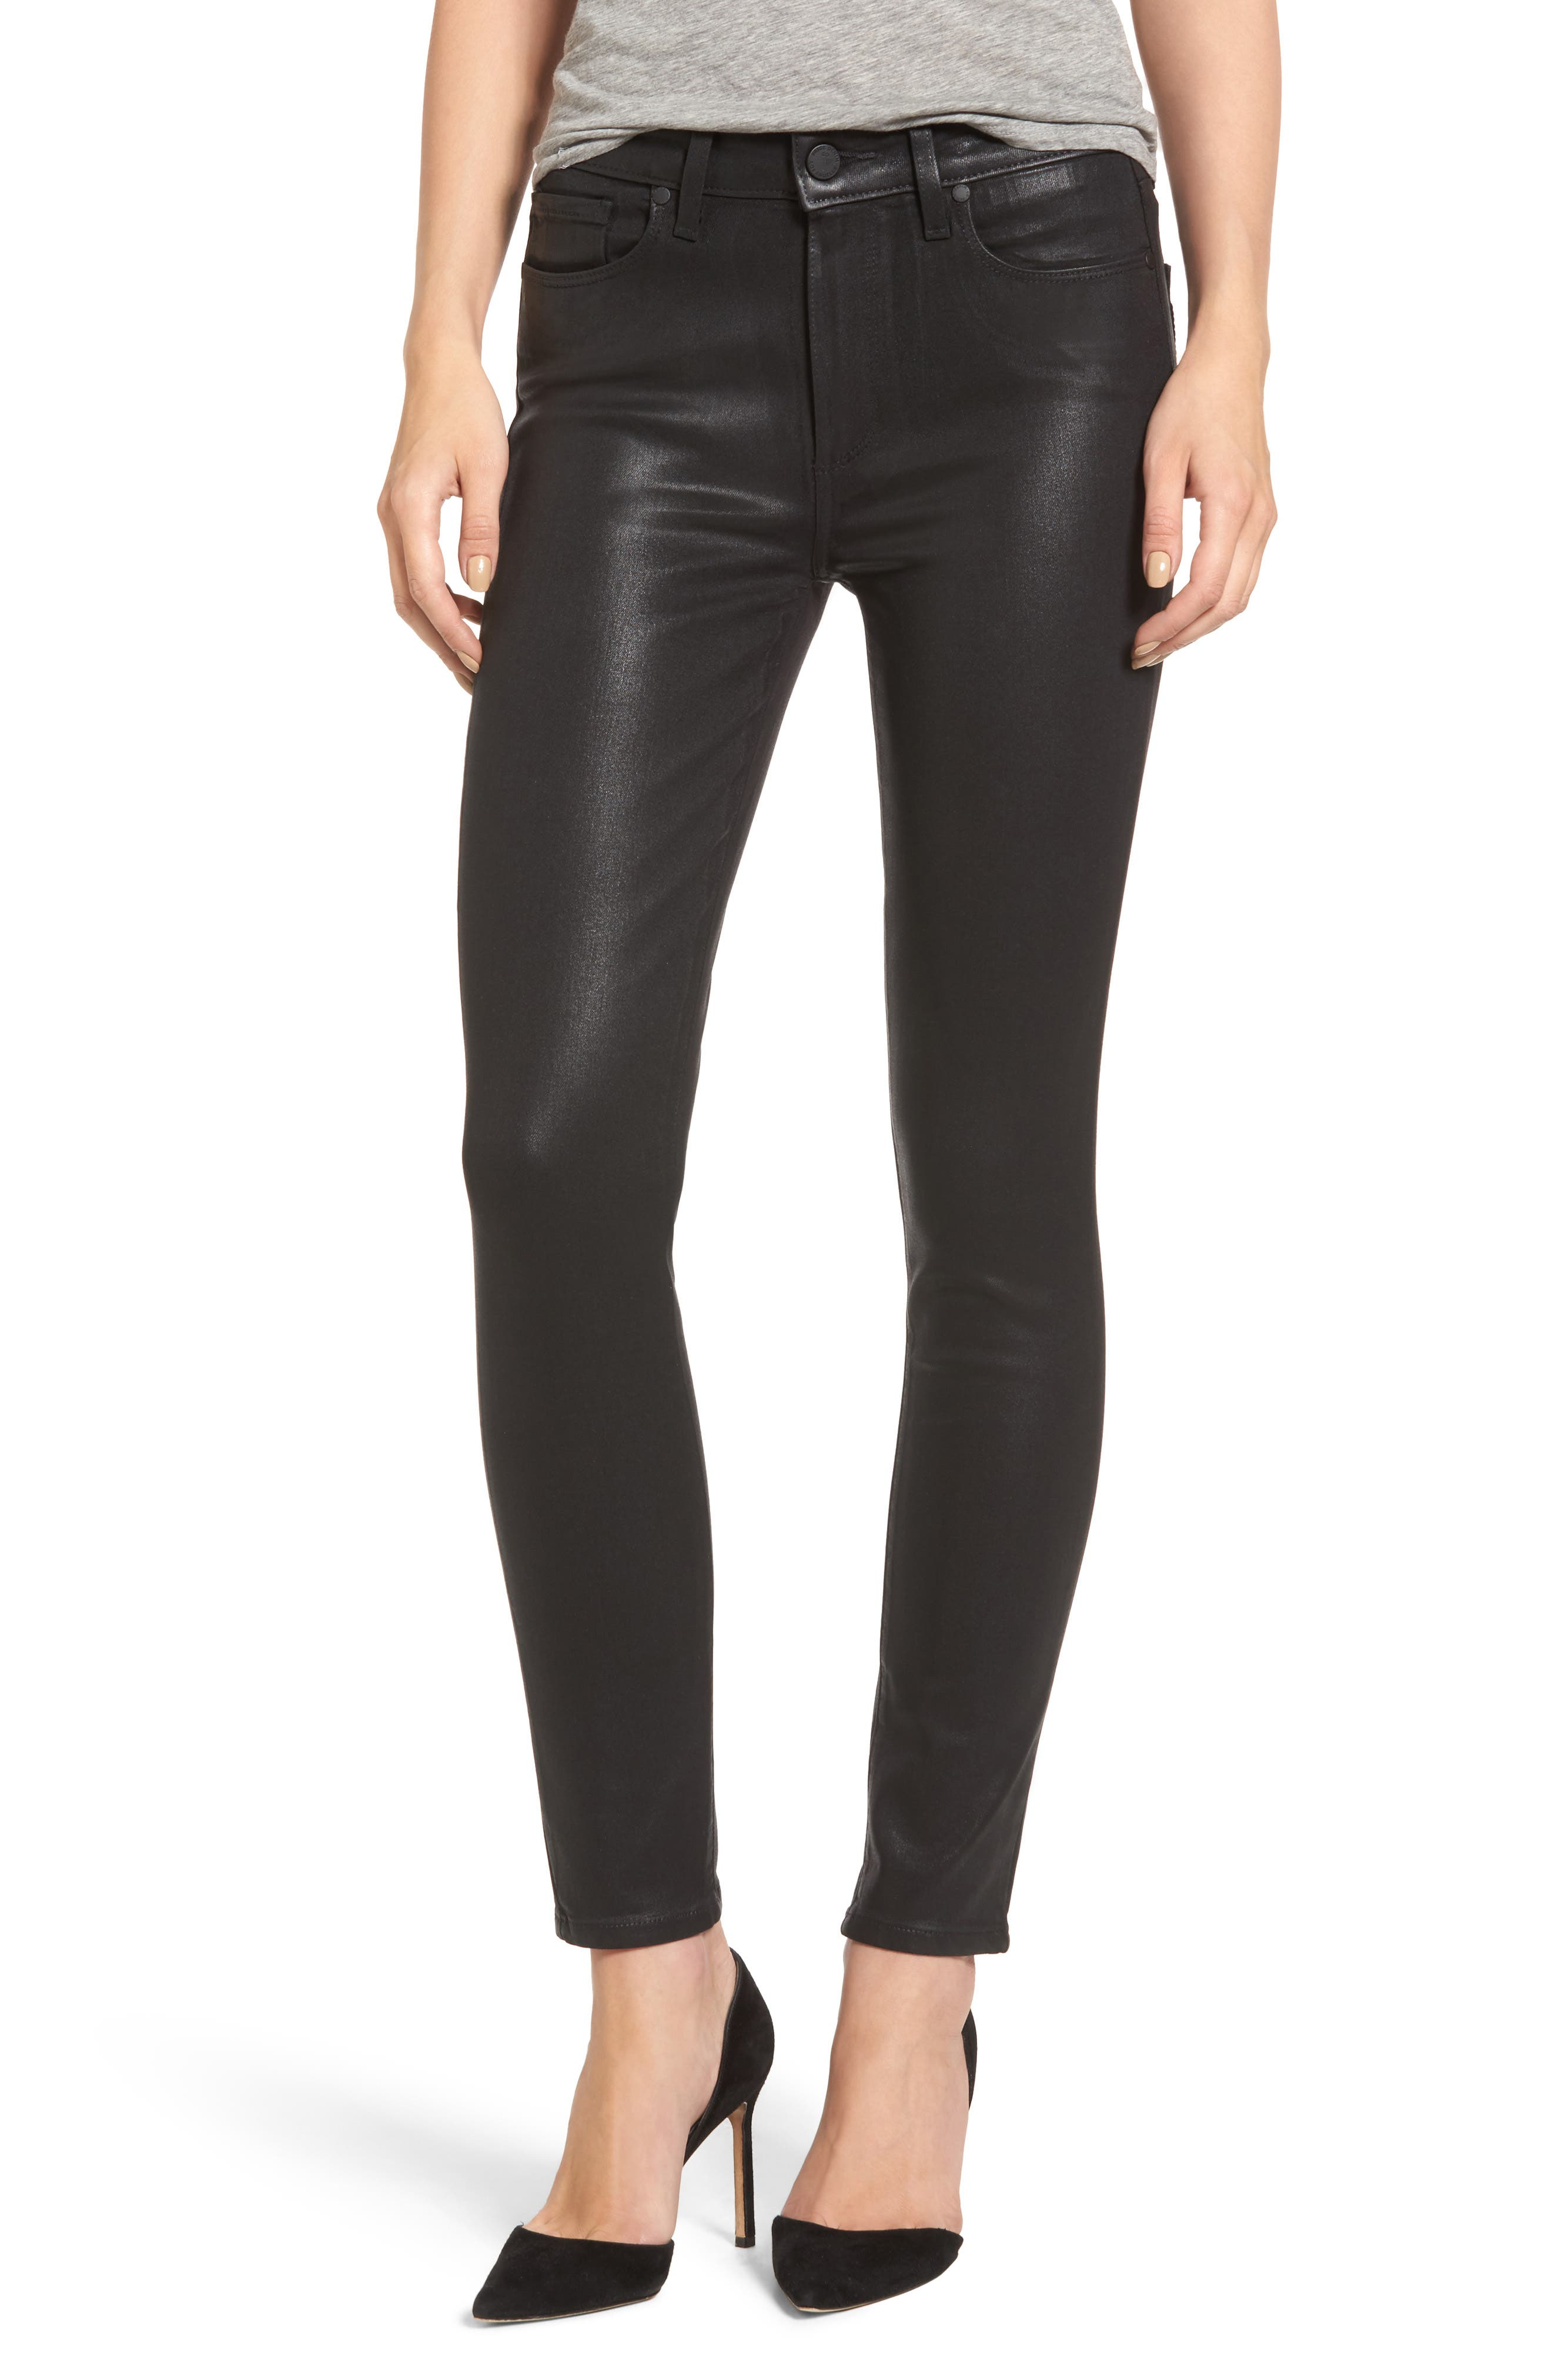 Transcend - Hoxton High Waist Ankle Skinny Jeans,                         Main,                         color, LUXE BLACK COATED